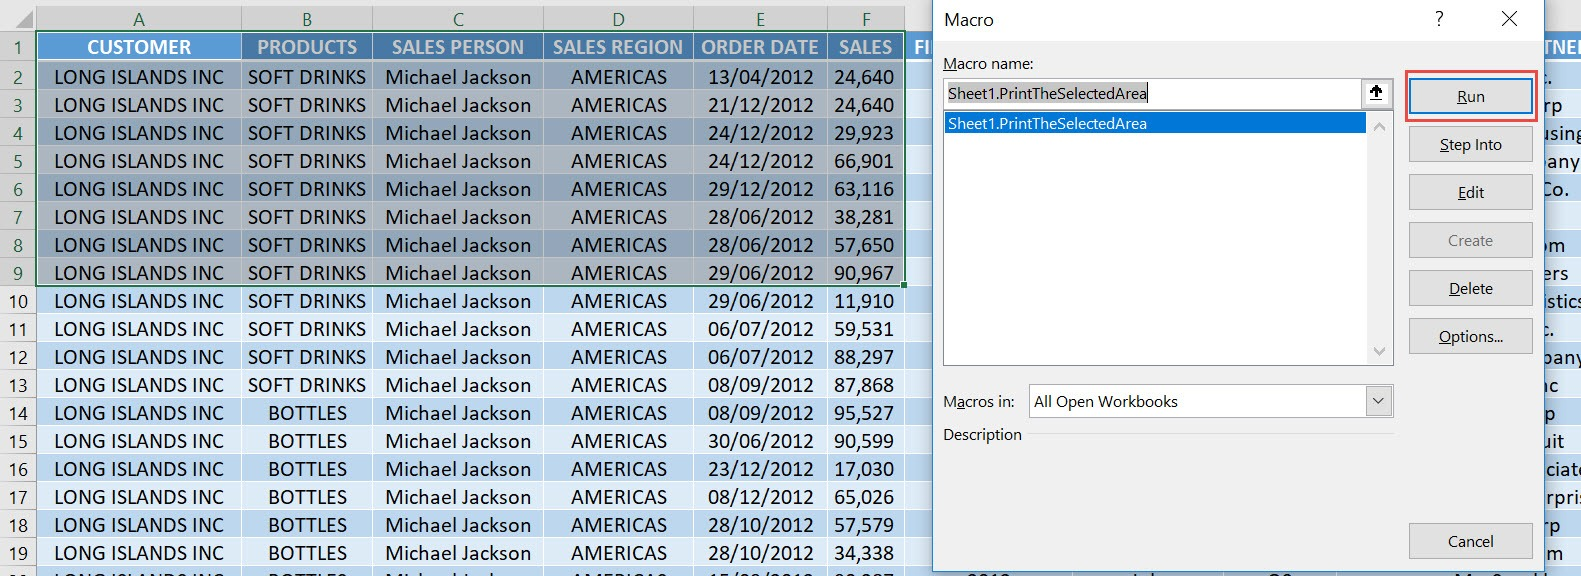 Print the Selected Area Using Macros In Excel | MyExcelOnline